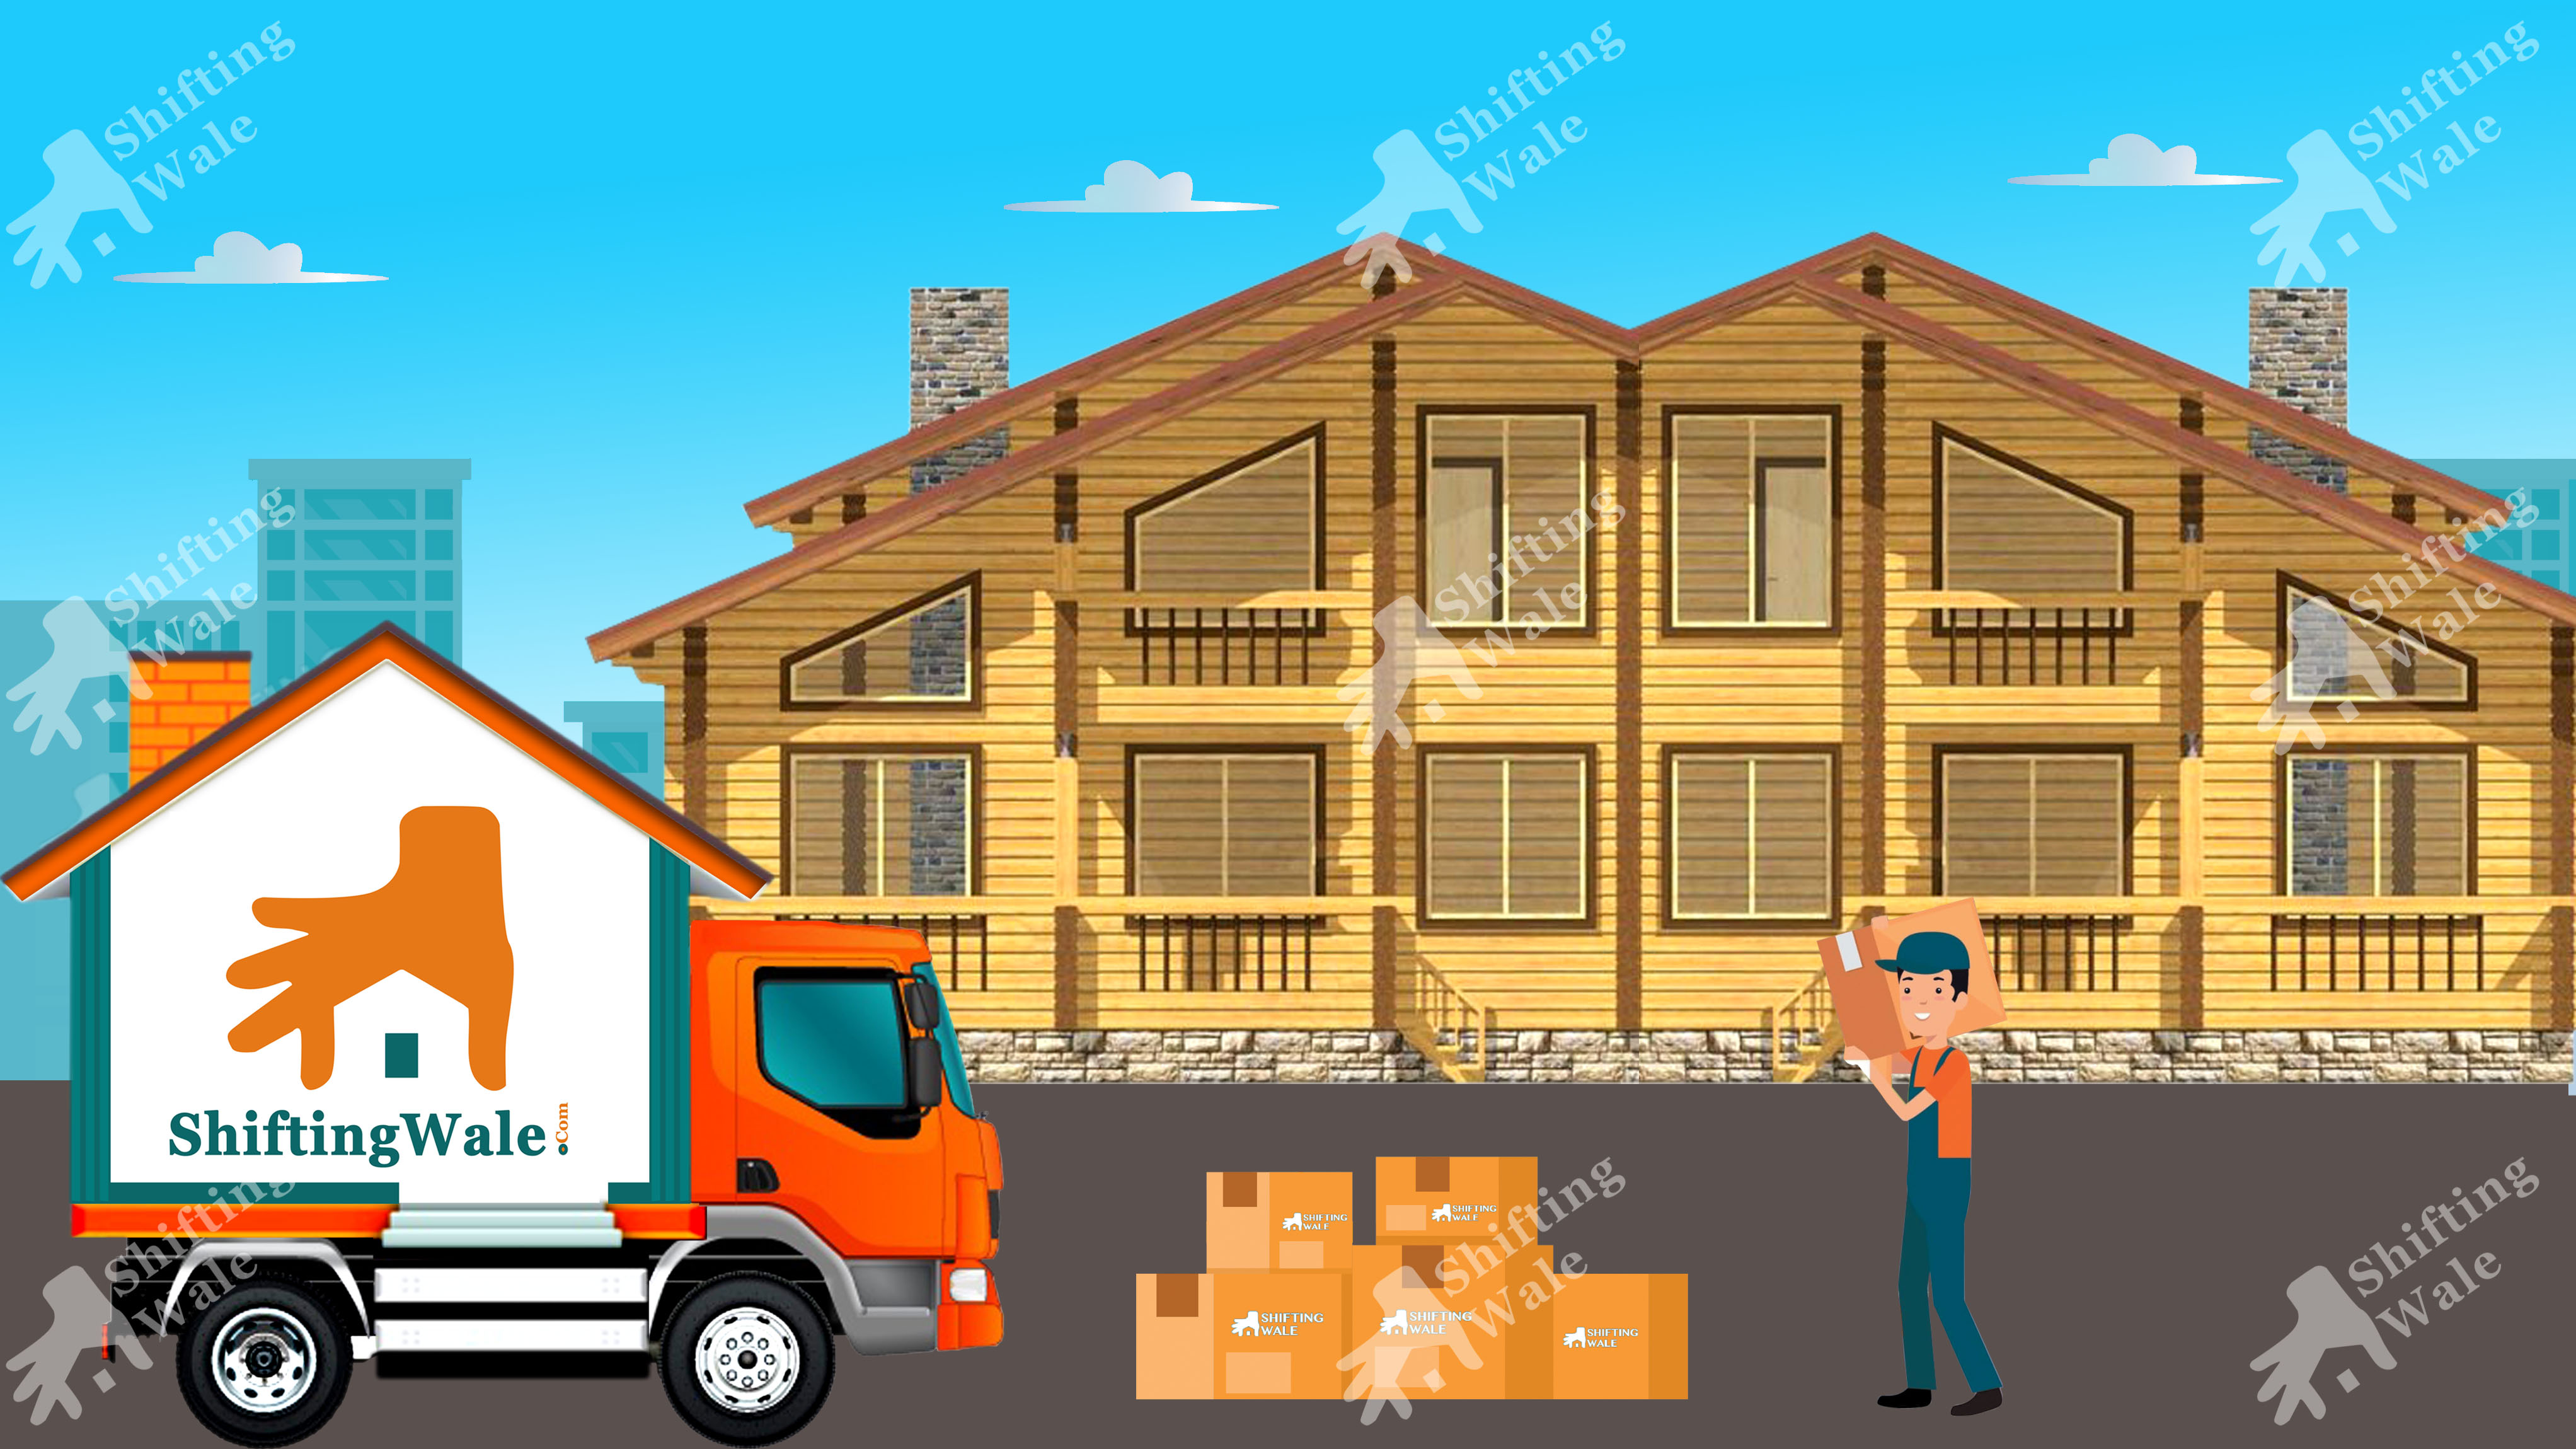 Pune To Kochi Trusted Packers and Movers Get Free Quotation with Best Price